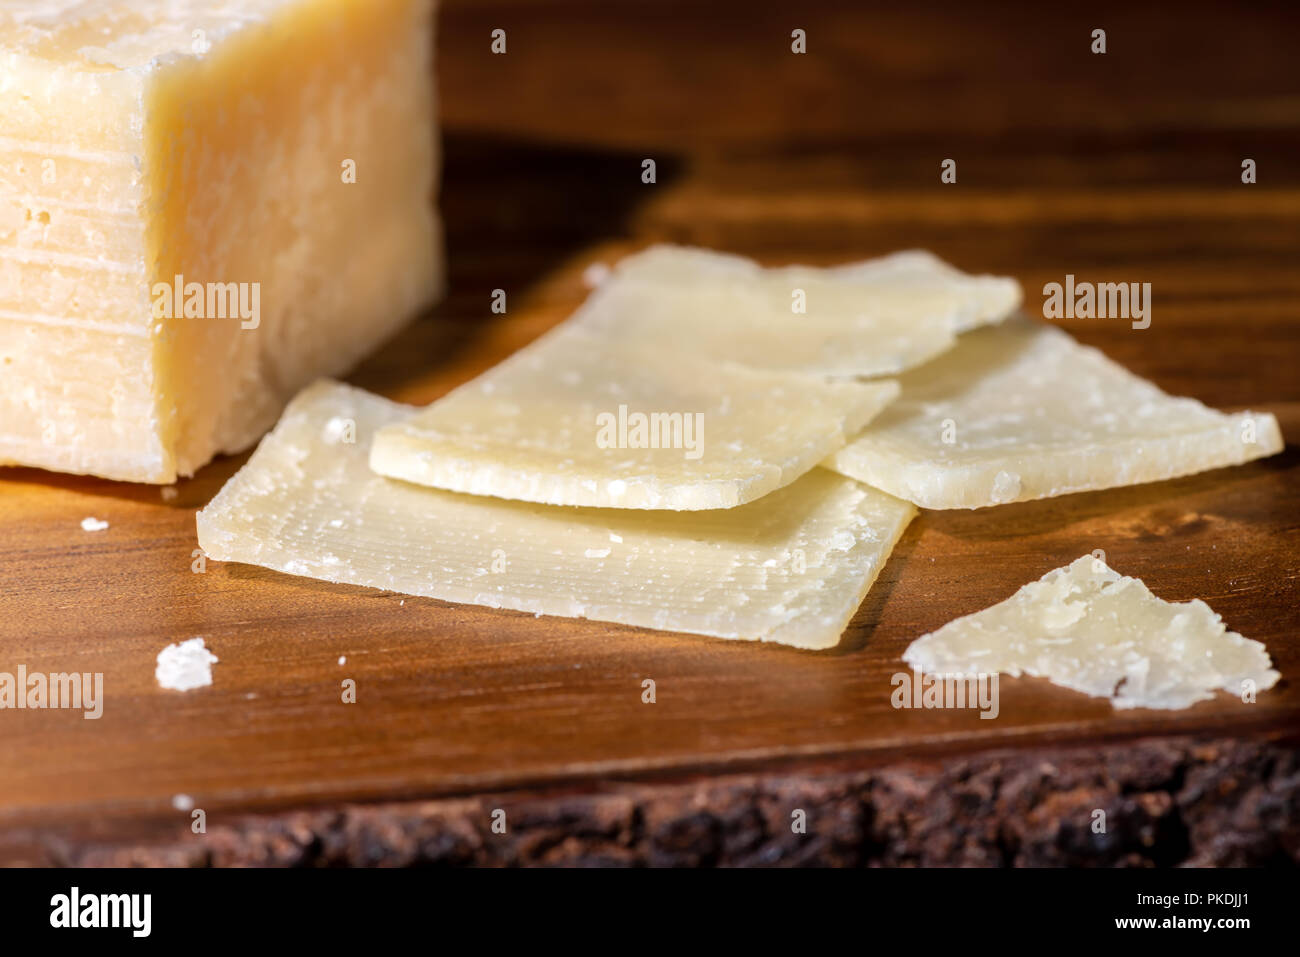 close up portion and slaced of fresh parmesan cheese on wooden background - Stock Image